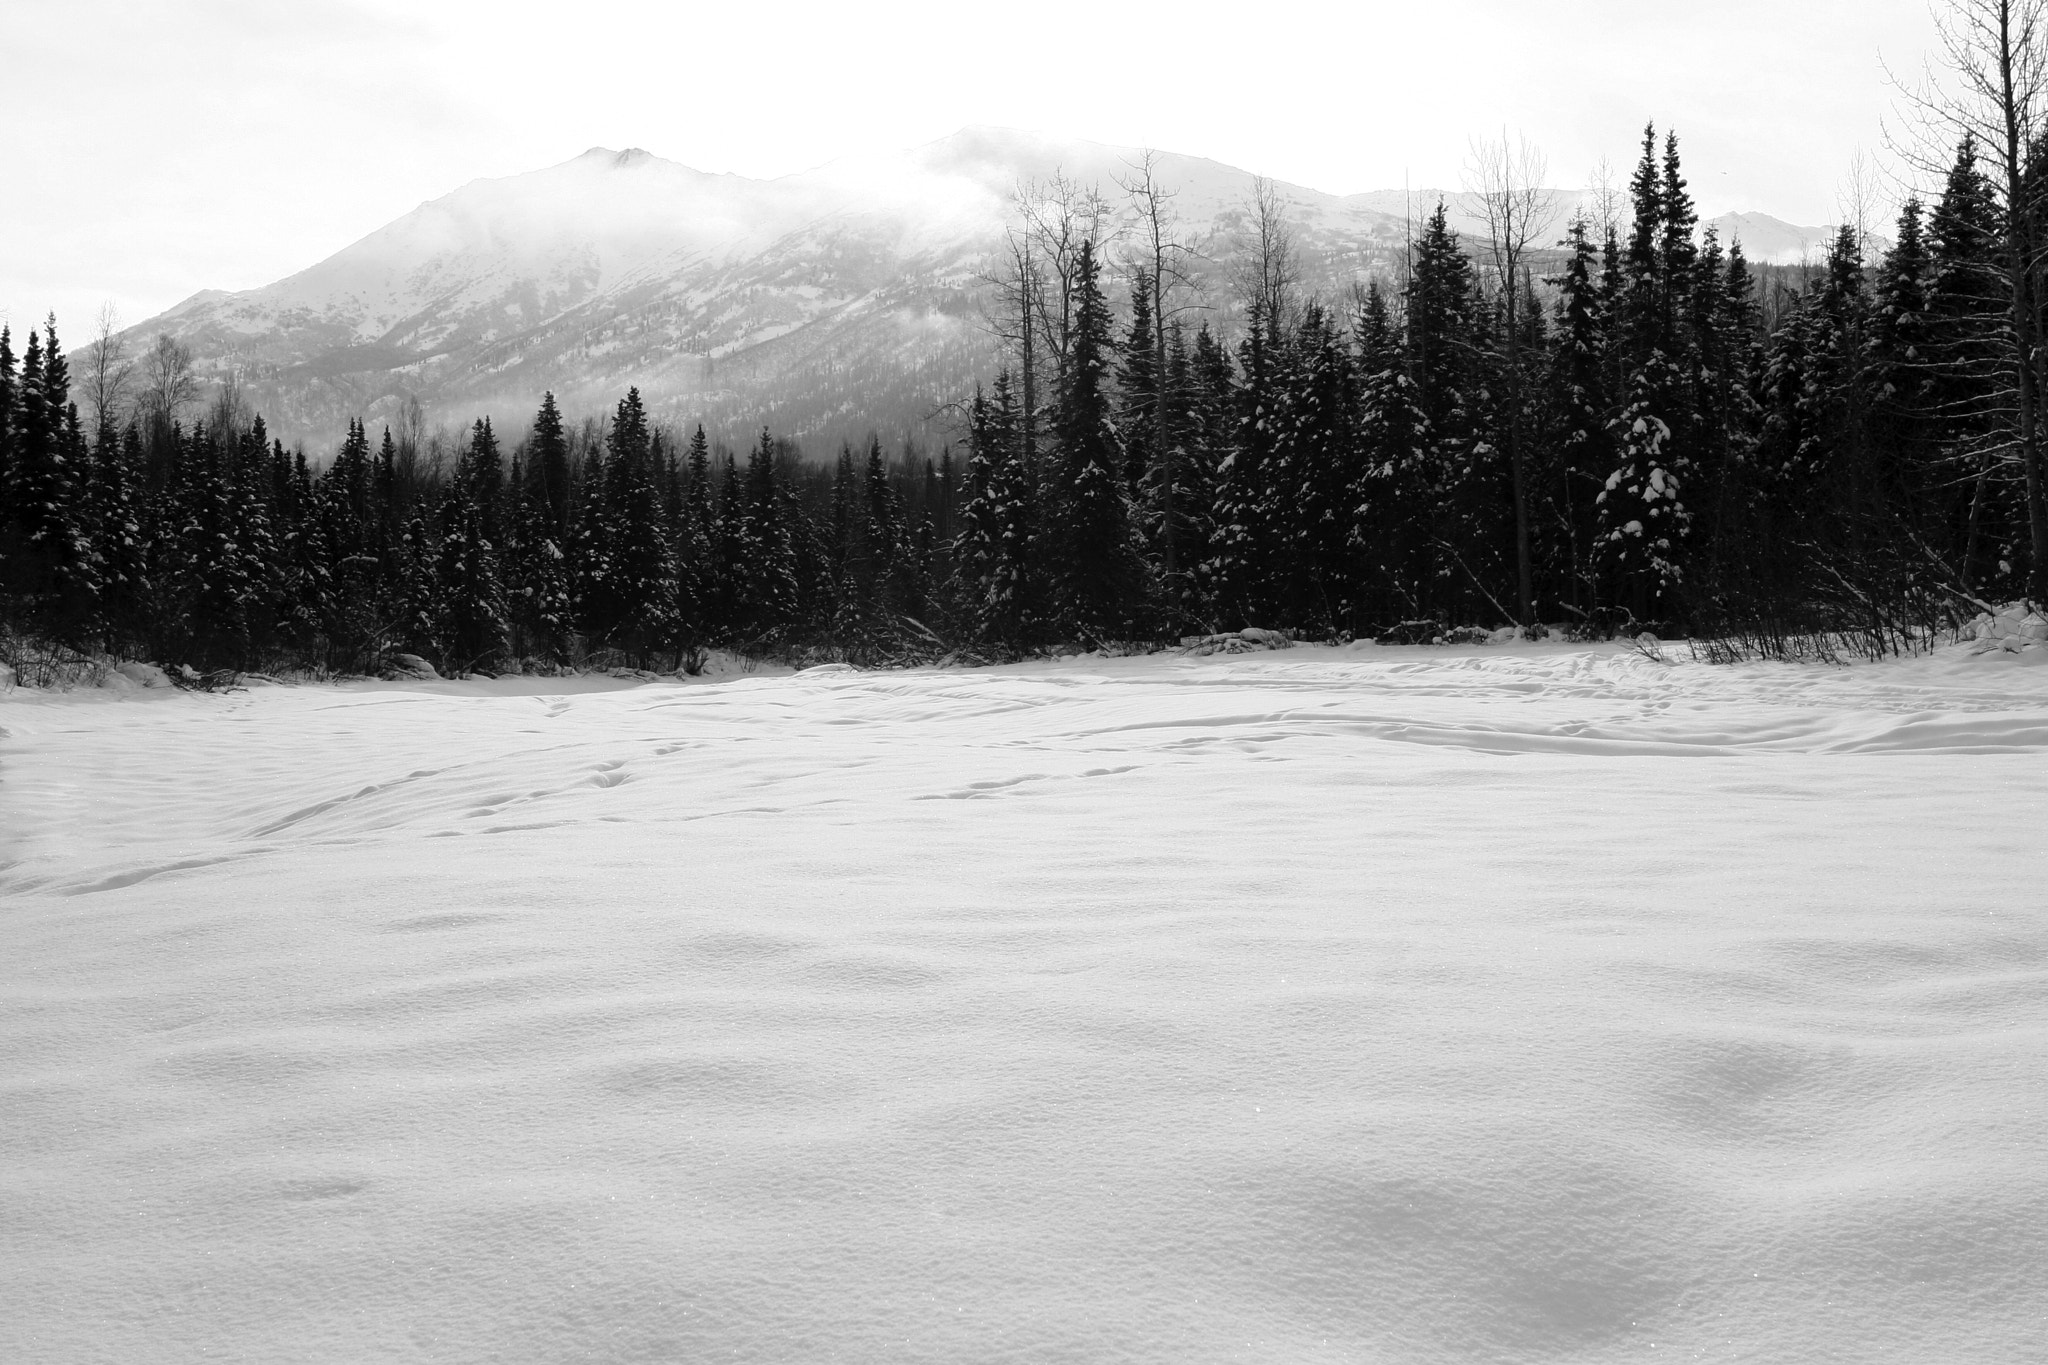 Photograph Eagle River Snow cover by Jon Deisher on 500px